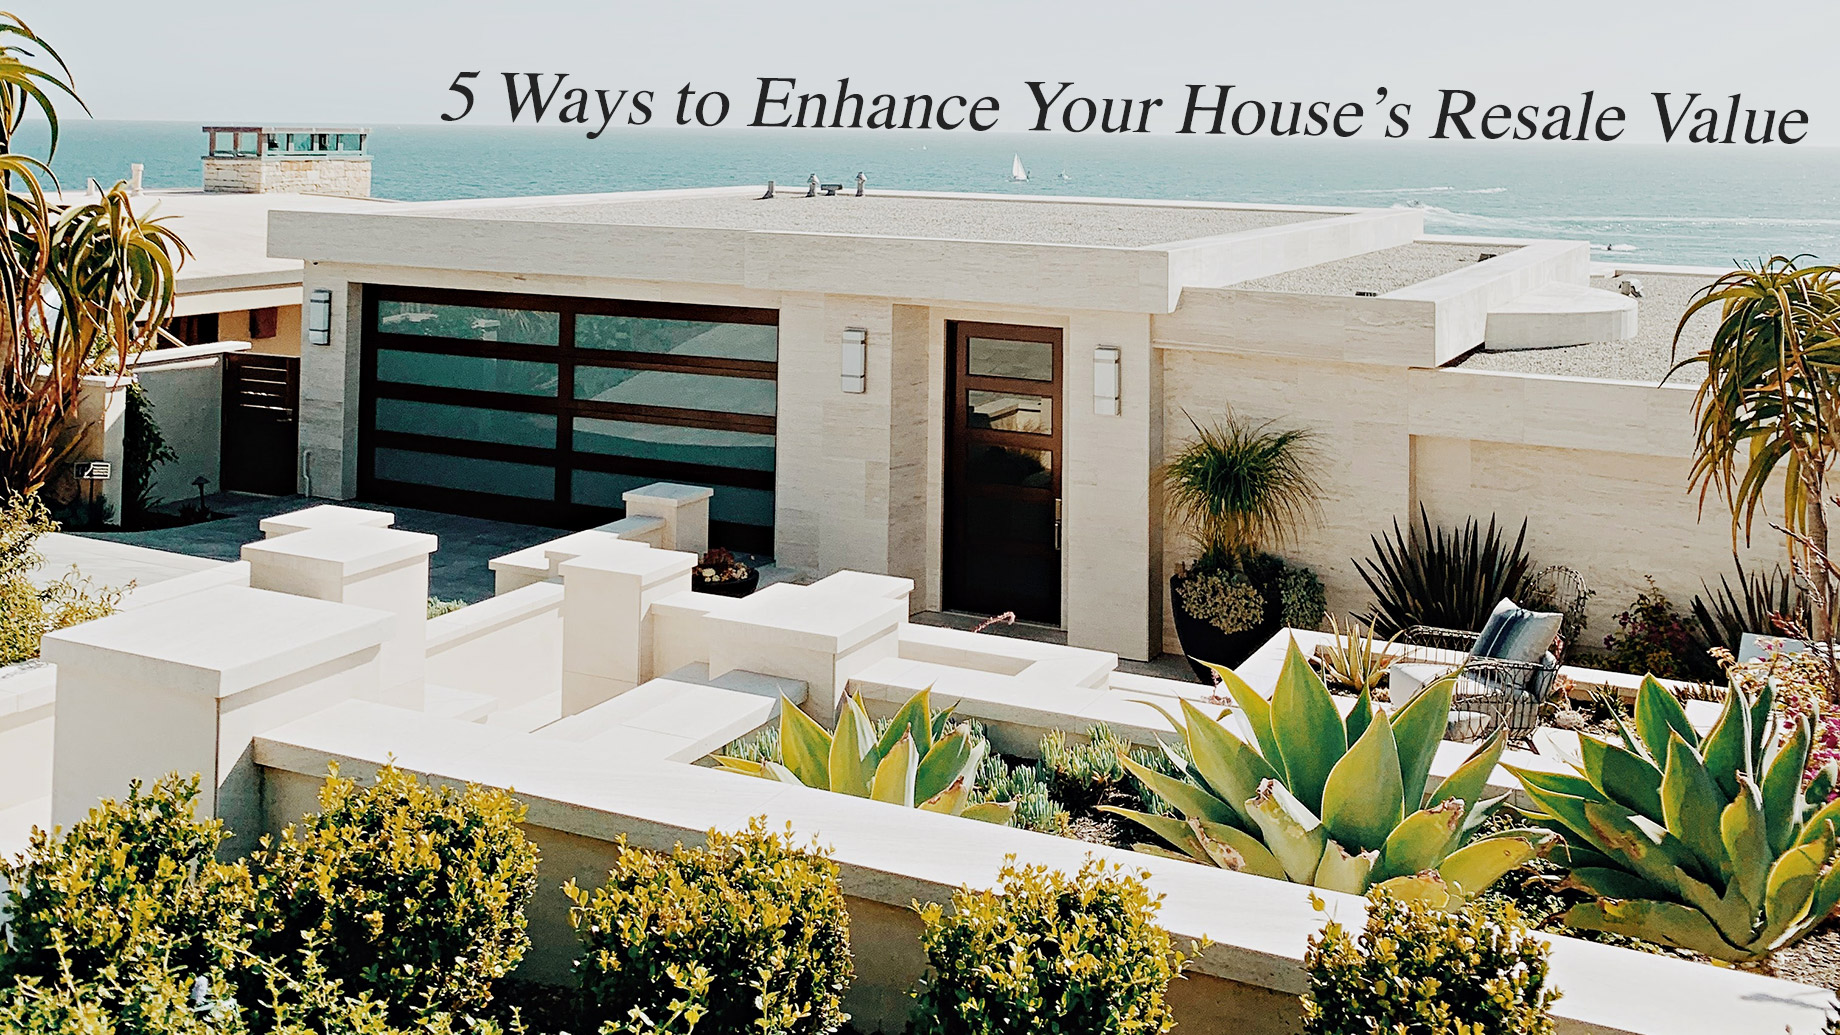 5 Ways to Enhance Your House's Resale Value